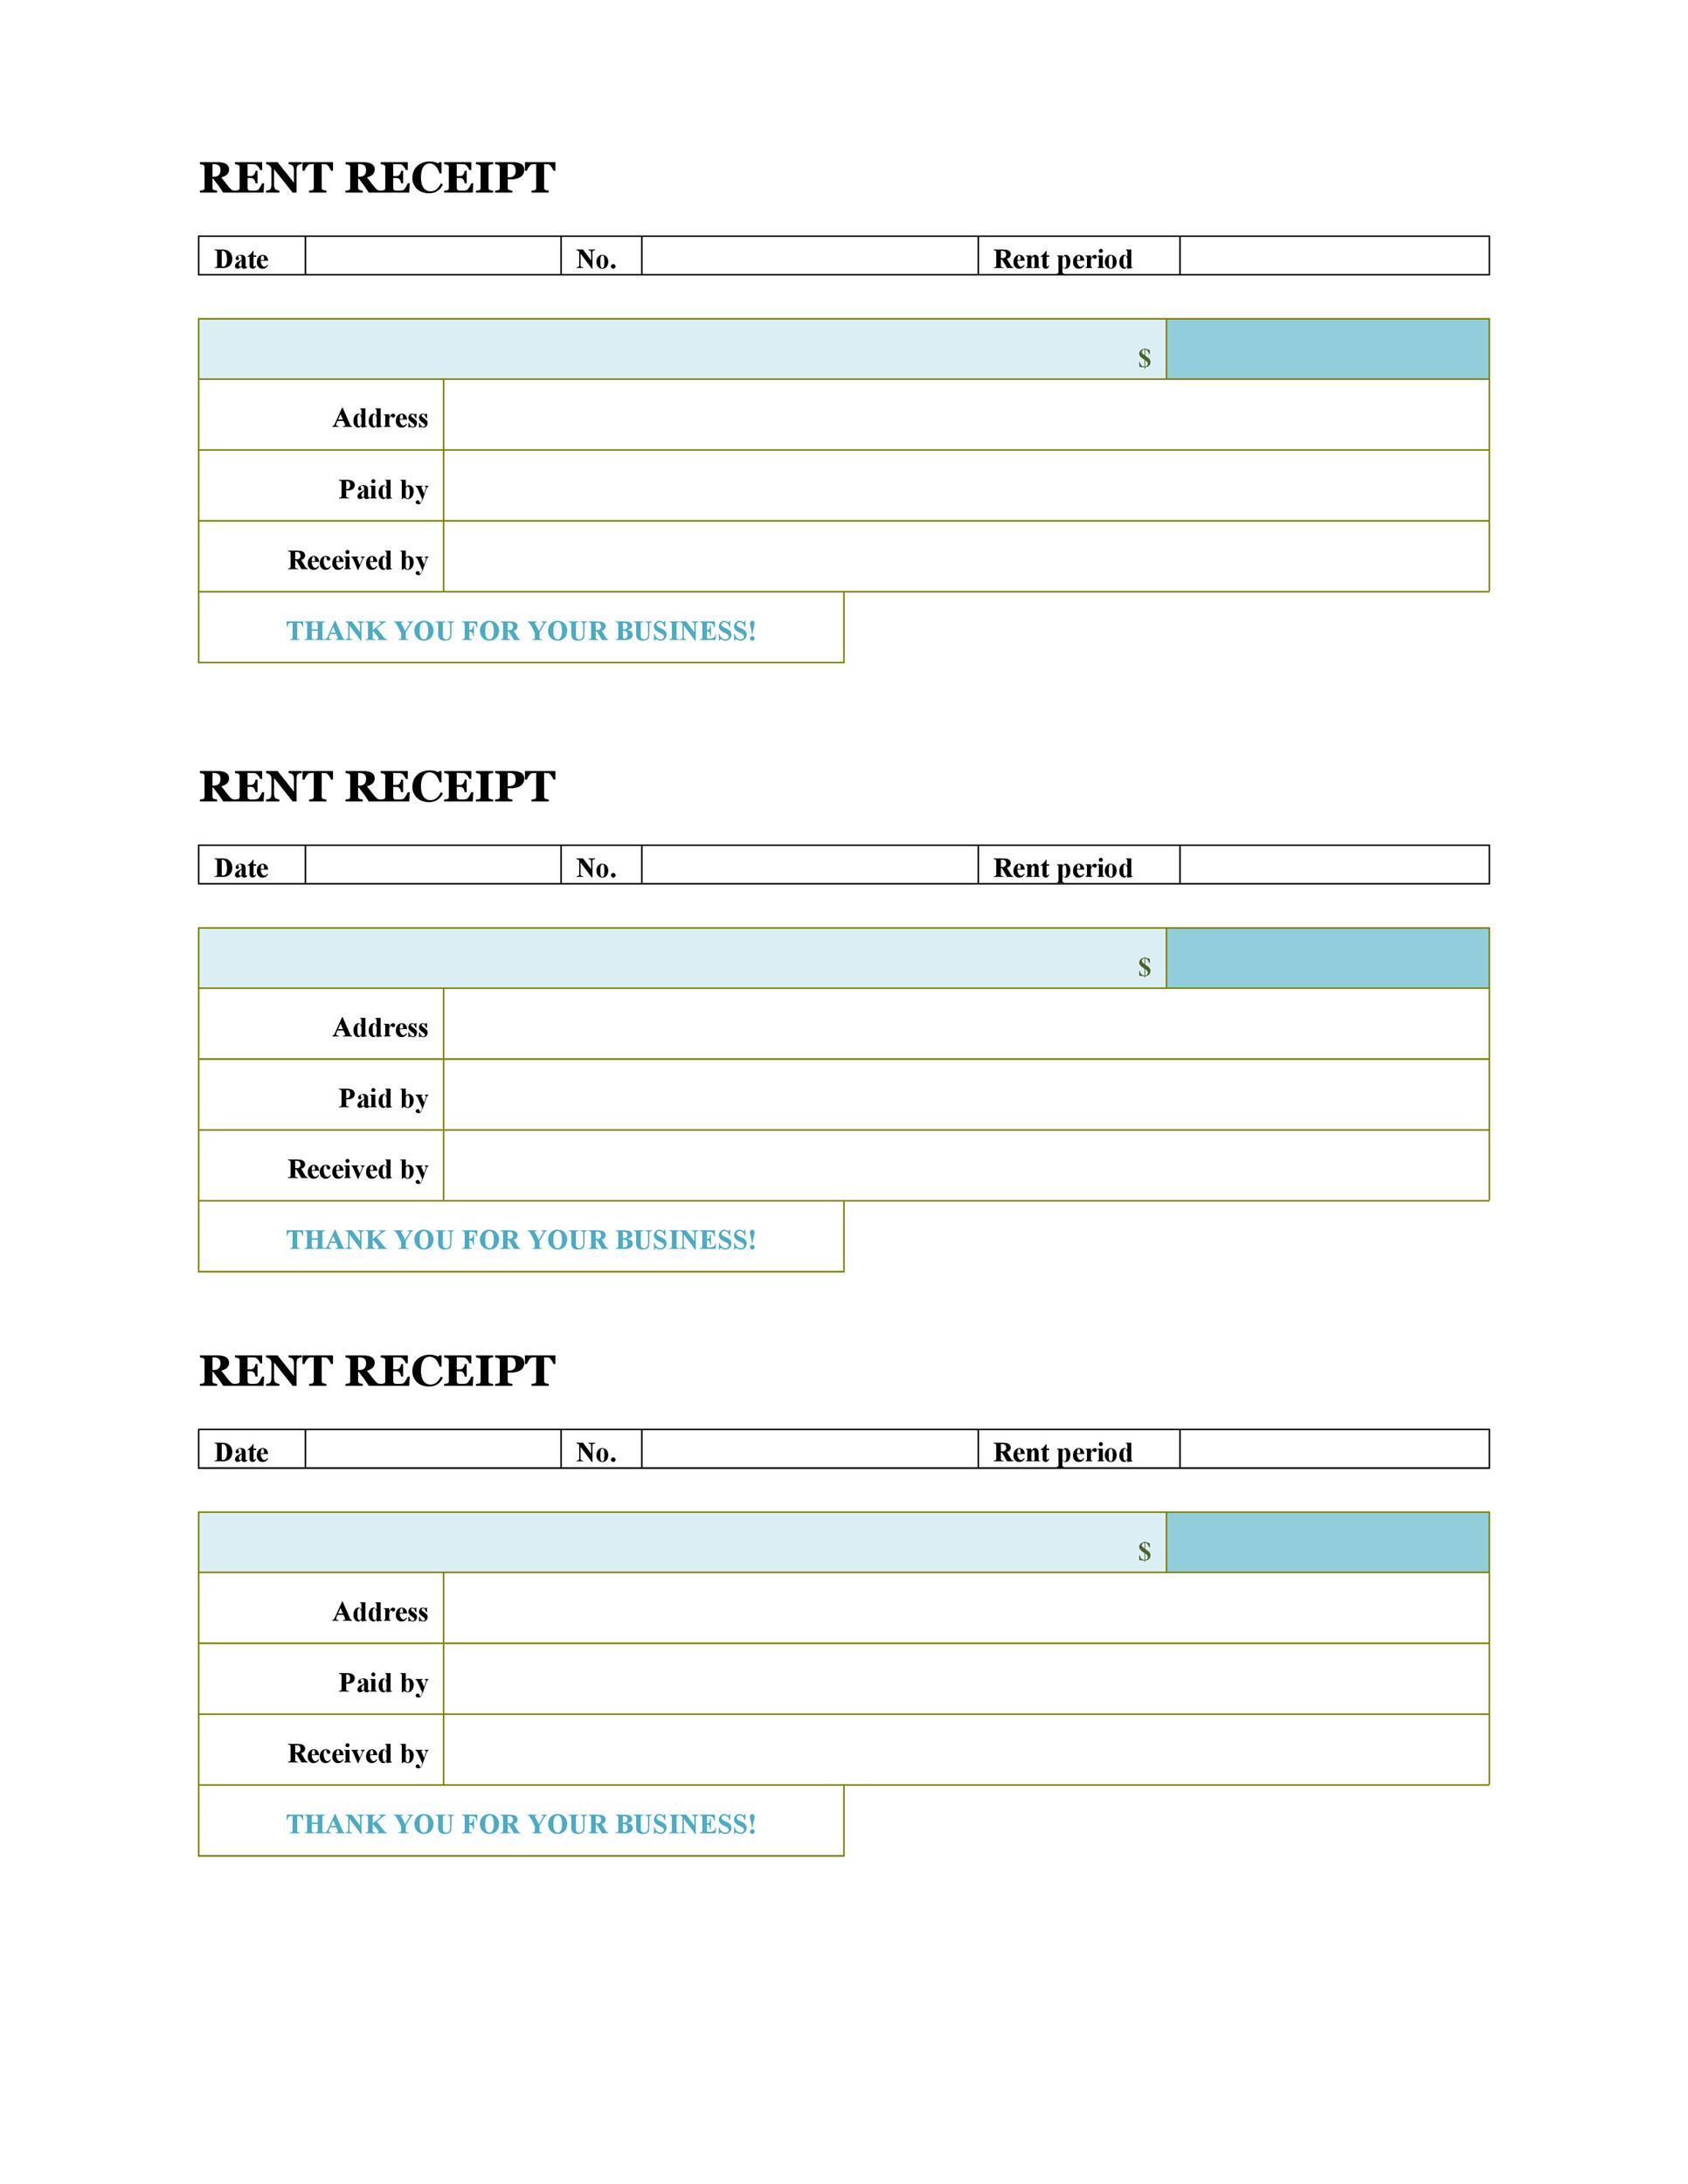 50 Free Receipt Templates Cash Sales Donation Taxi – Sample Receipt for Rent